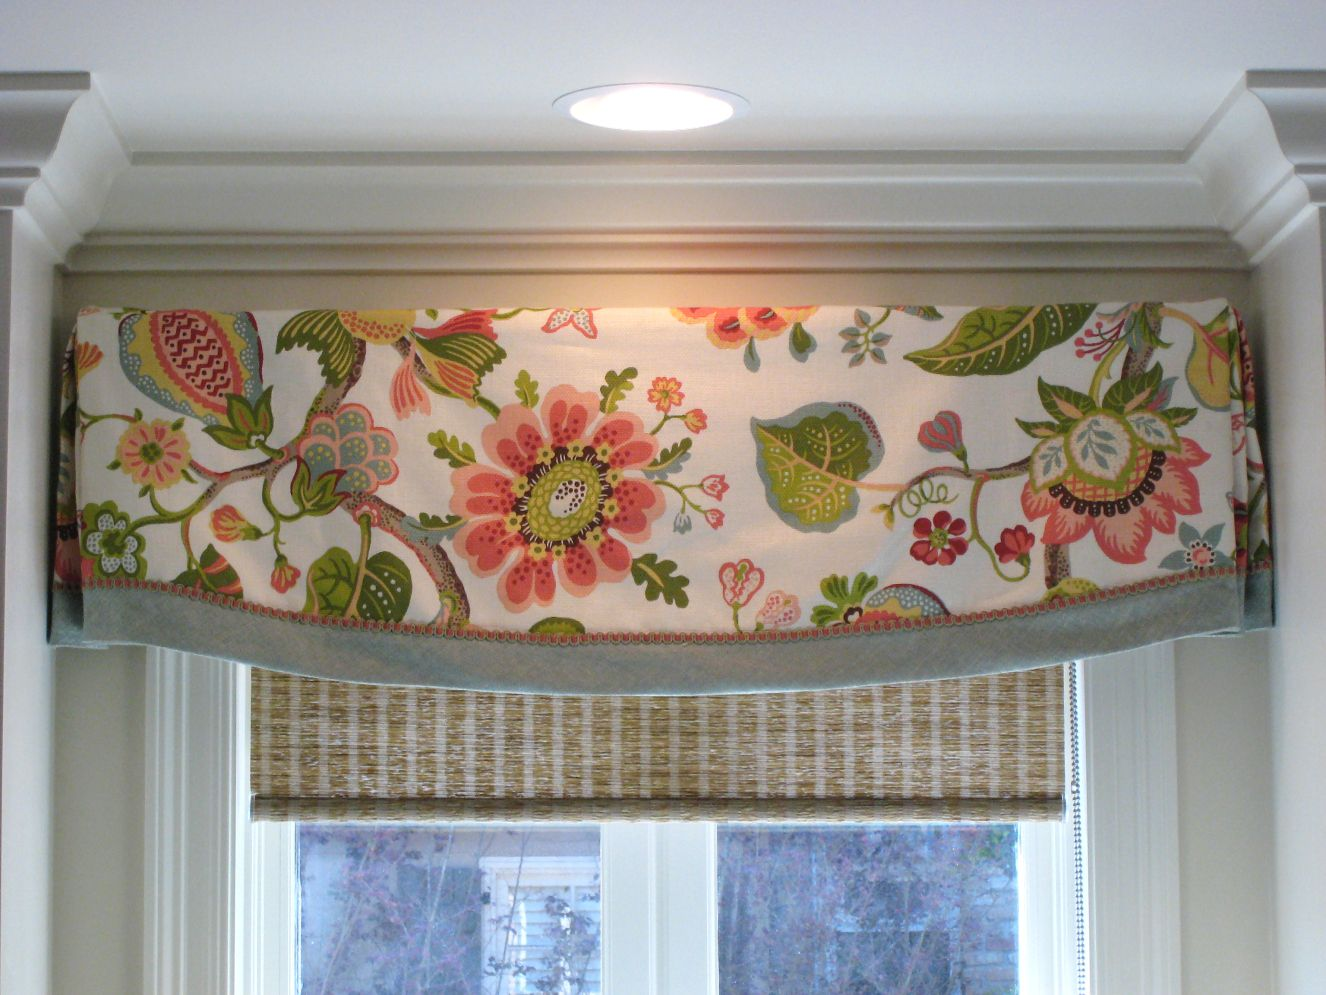 valance design idea floral fabric with contrast banding decorative gimp over seam - Valance Design Ideas